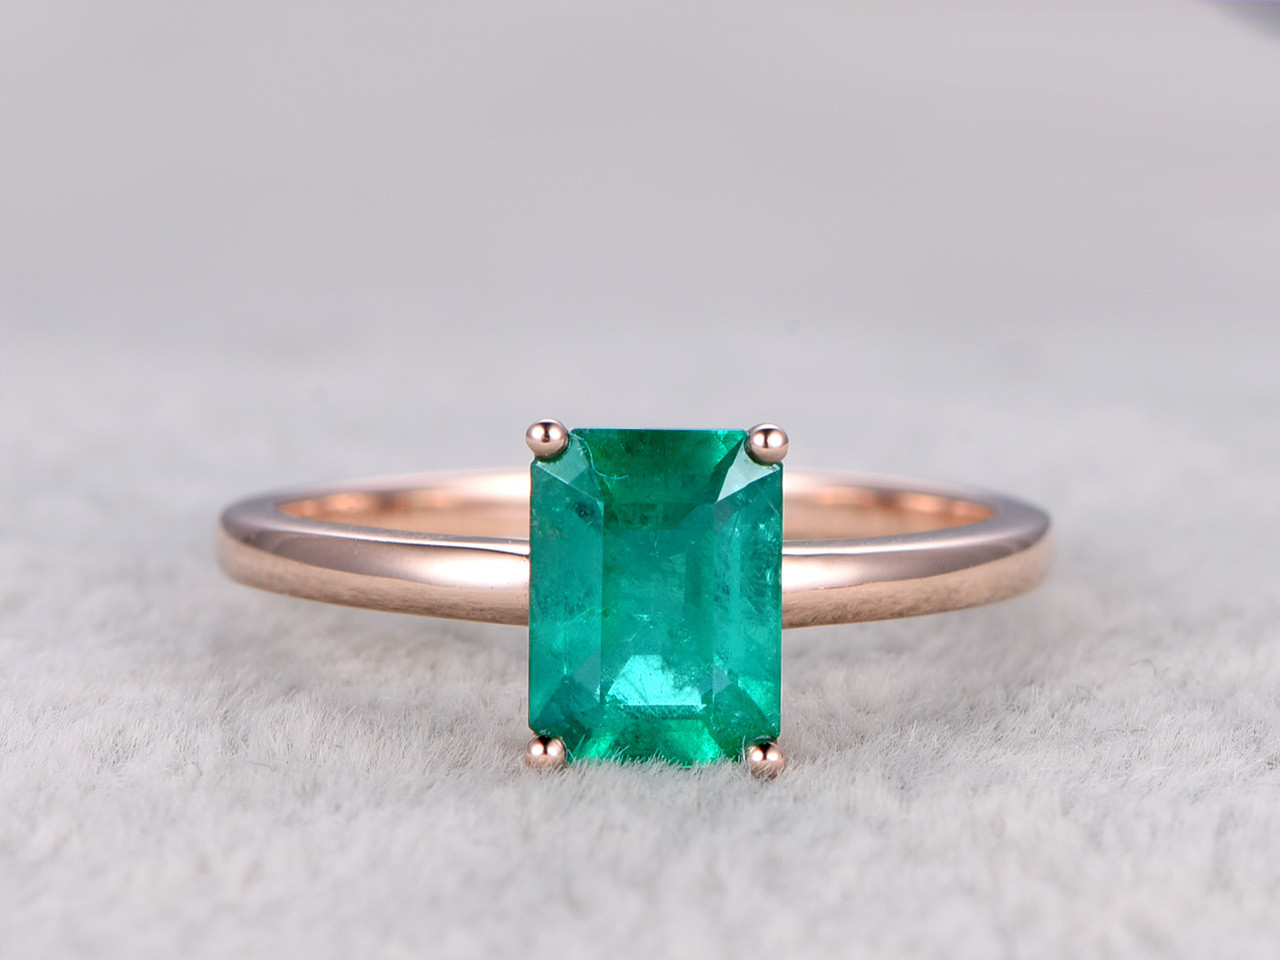 ring cut solitaire emerald diamond